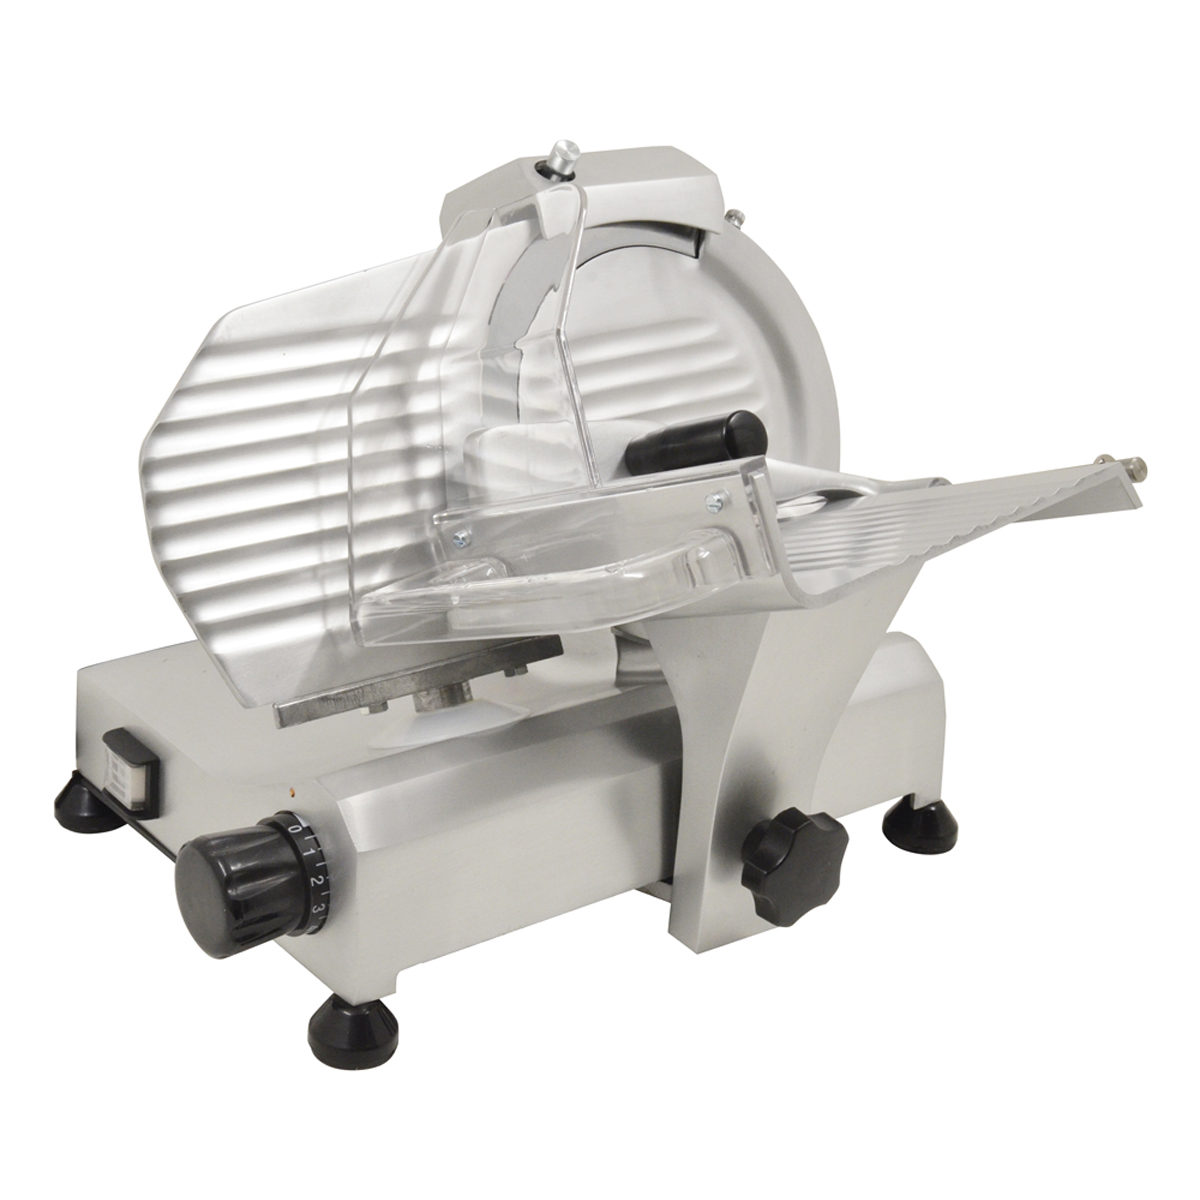 "Omcan 13607 8"" Belt Drive Slicer 110V, 0.20 HP, with Fixed Blade Sharpener"